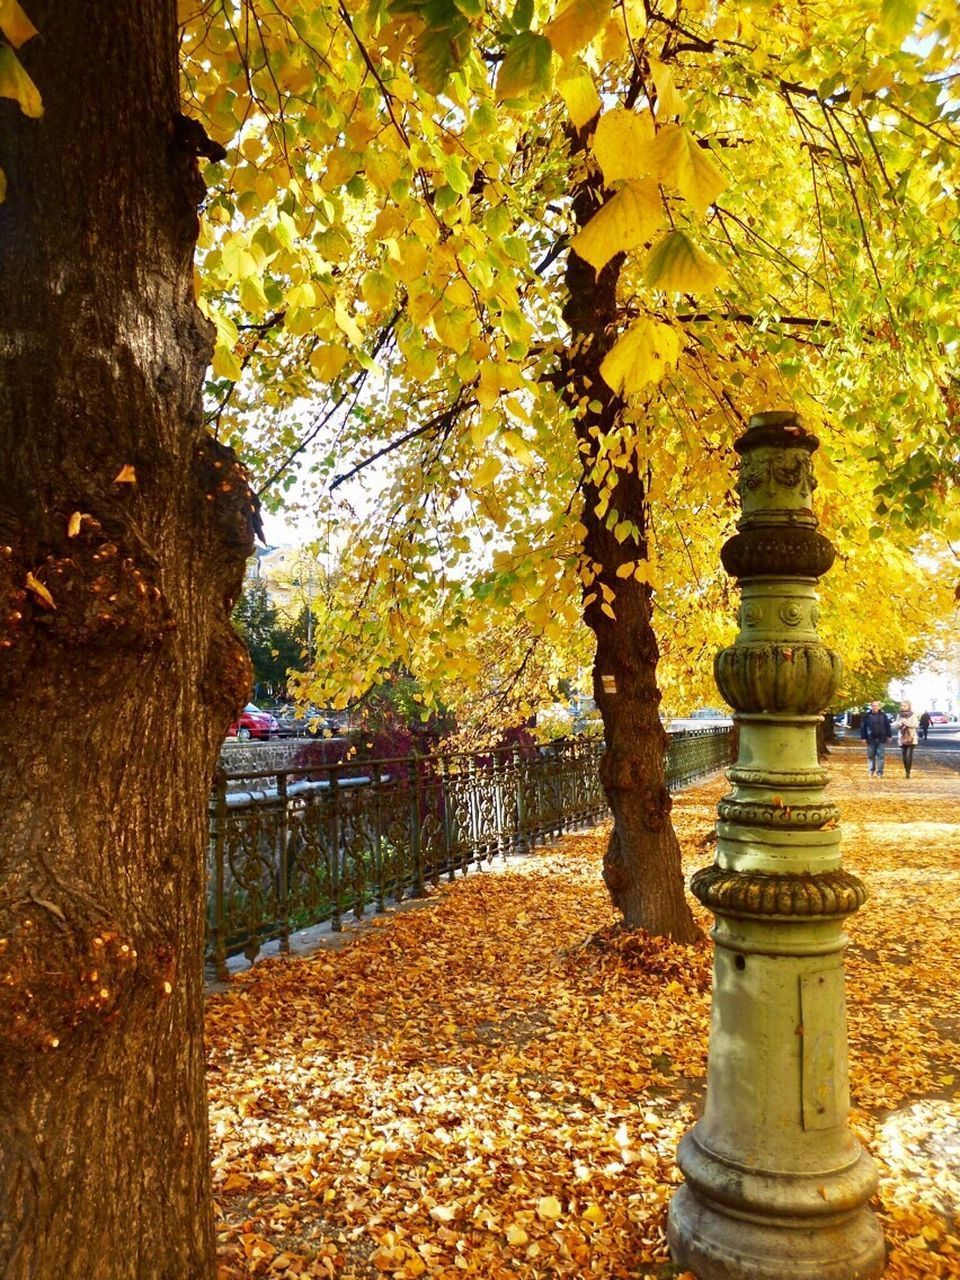 autumn, tree, leaf, change, nature, beauty in nature, tree trunk, day, outdoors, park - man made space, scenics, tranquility, growth, maple tree, branch, no people, tranquil scene, yellow, maple